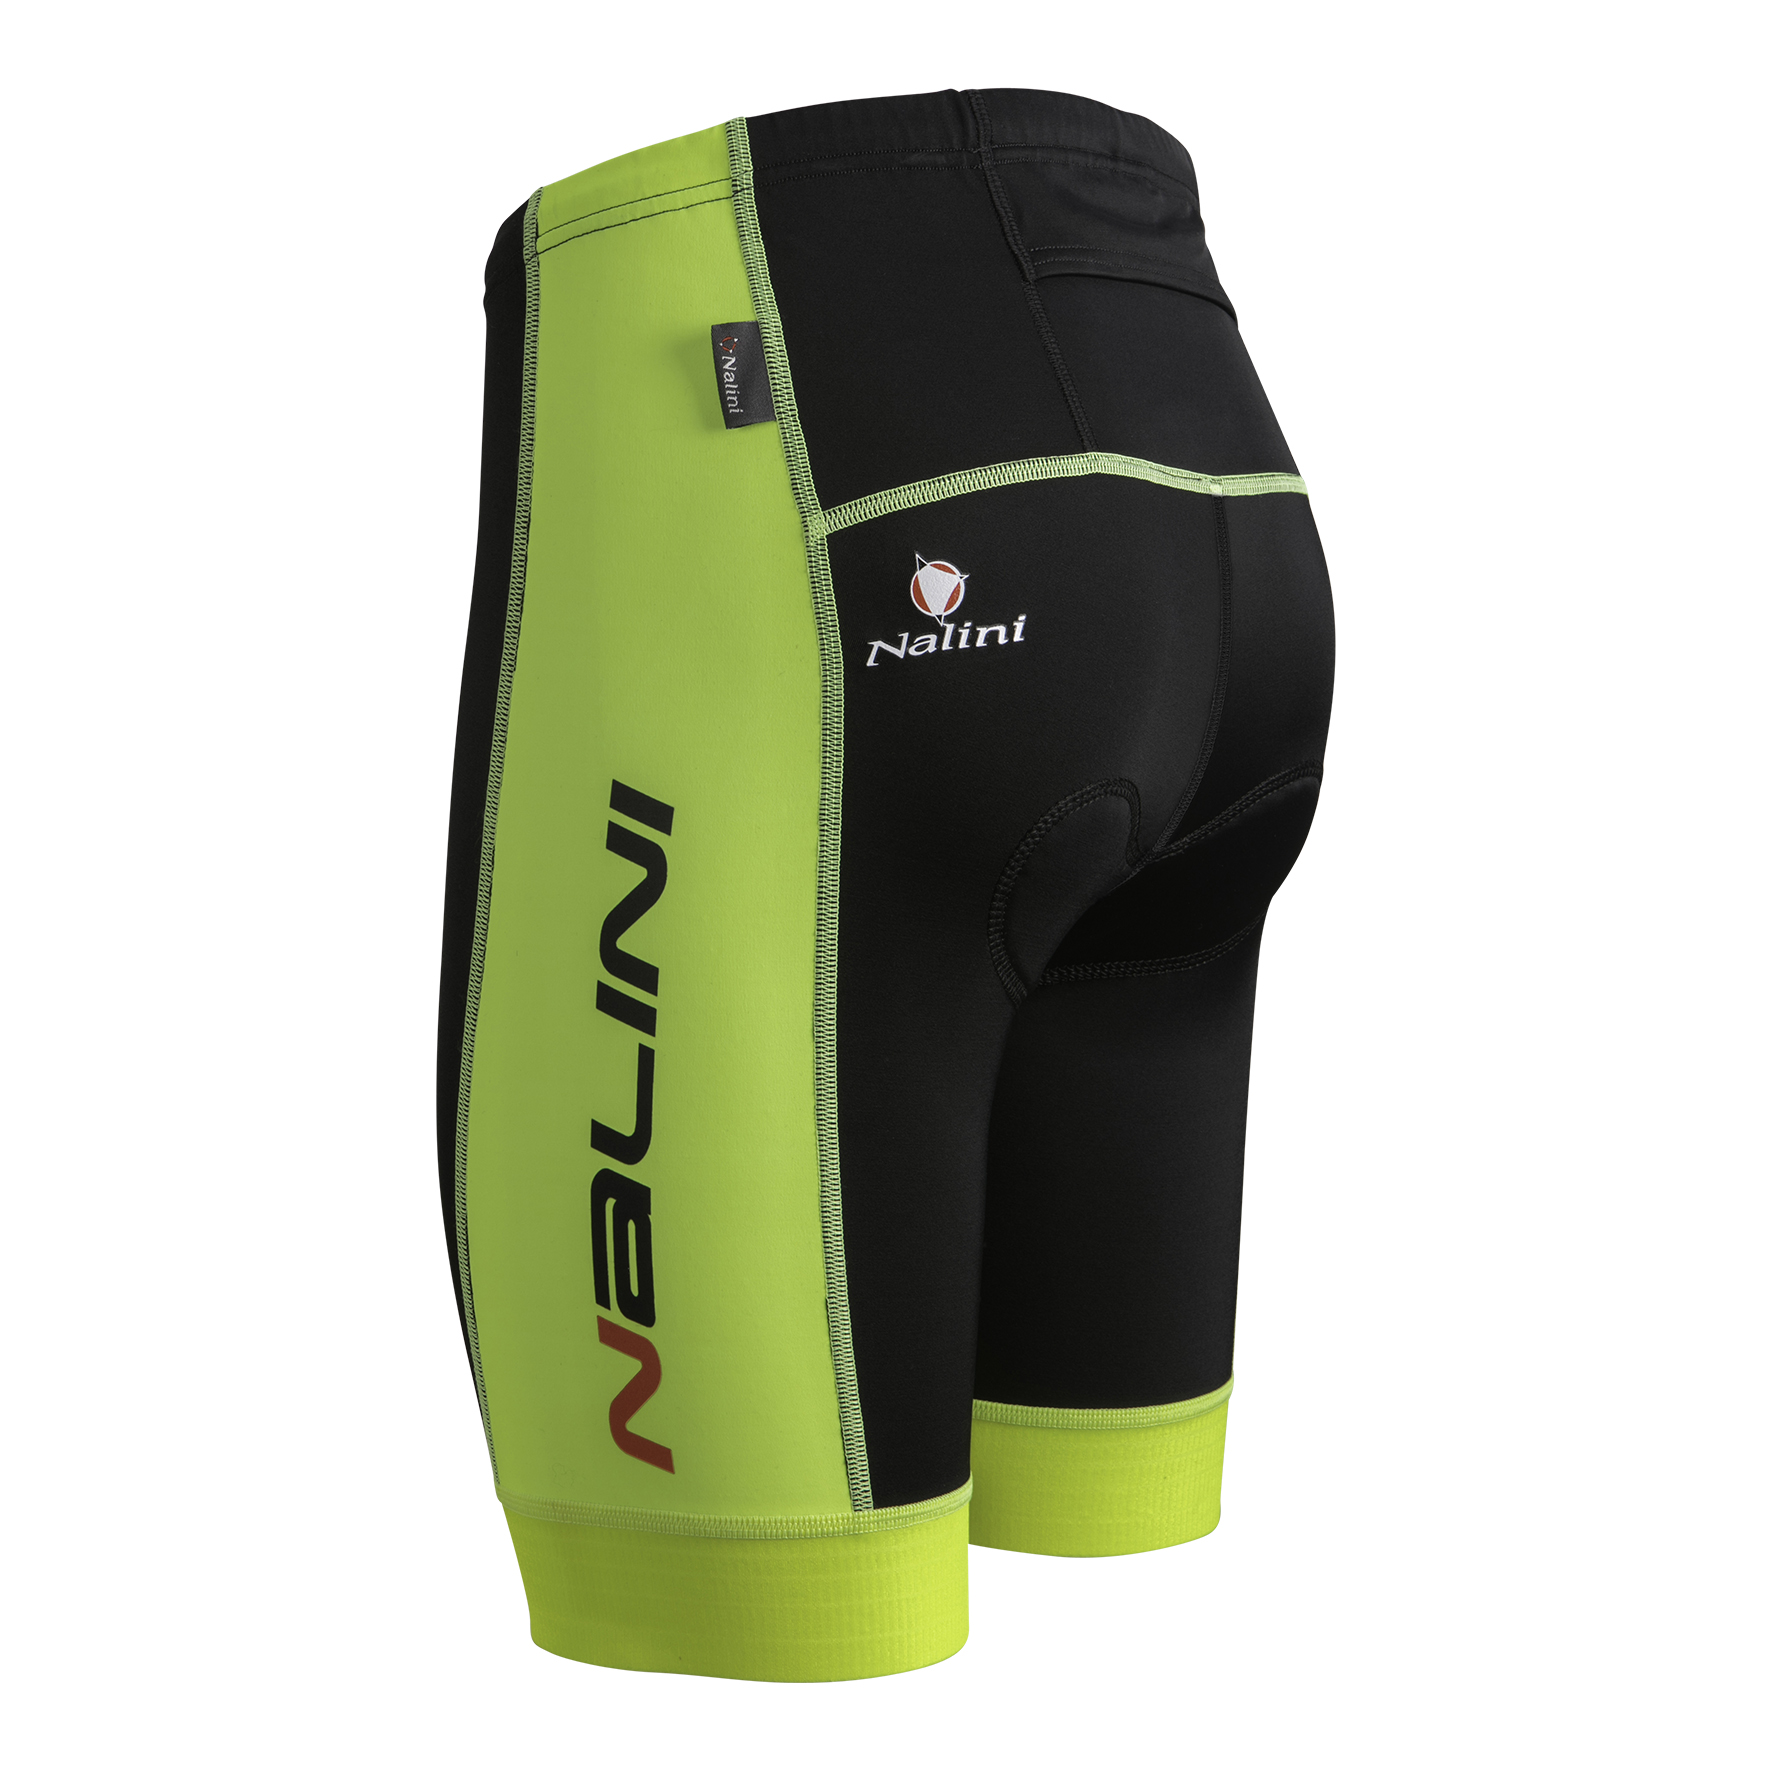 Nalini Mens Cycling Jerseys Shorts Jackets and Vests